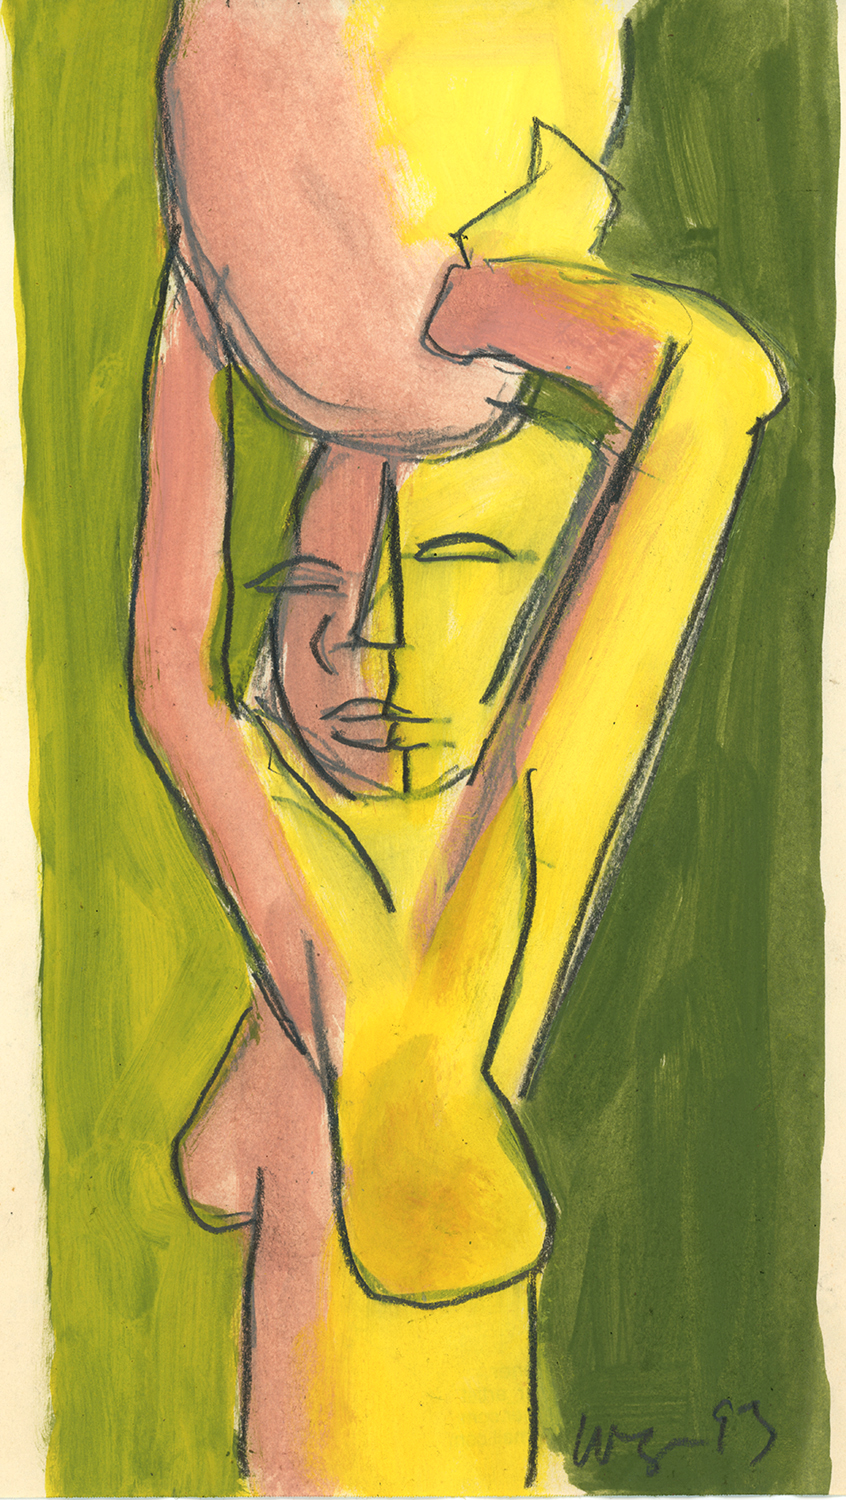 Woman Carrying Water, watercolor on paper, 11 X 8, 1993